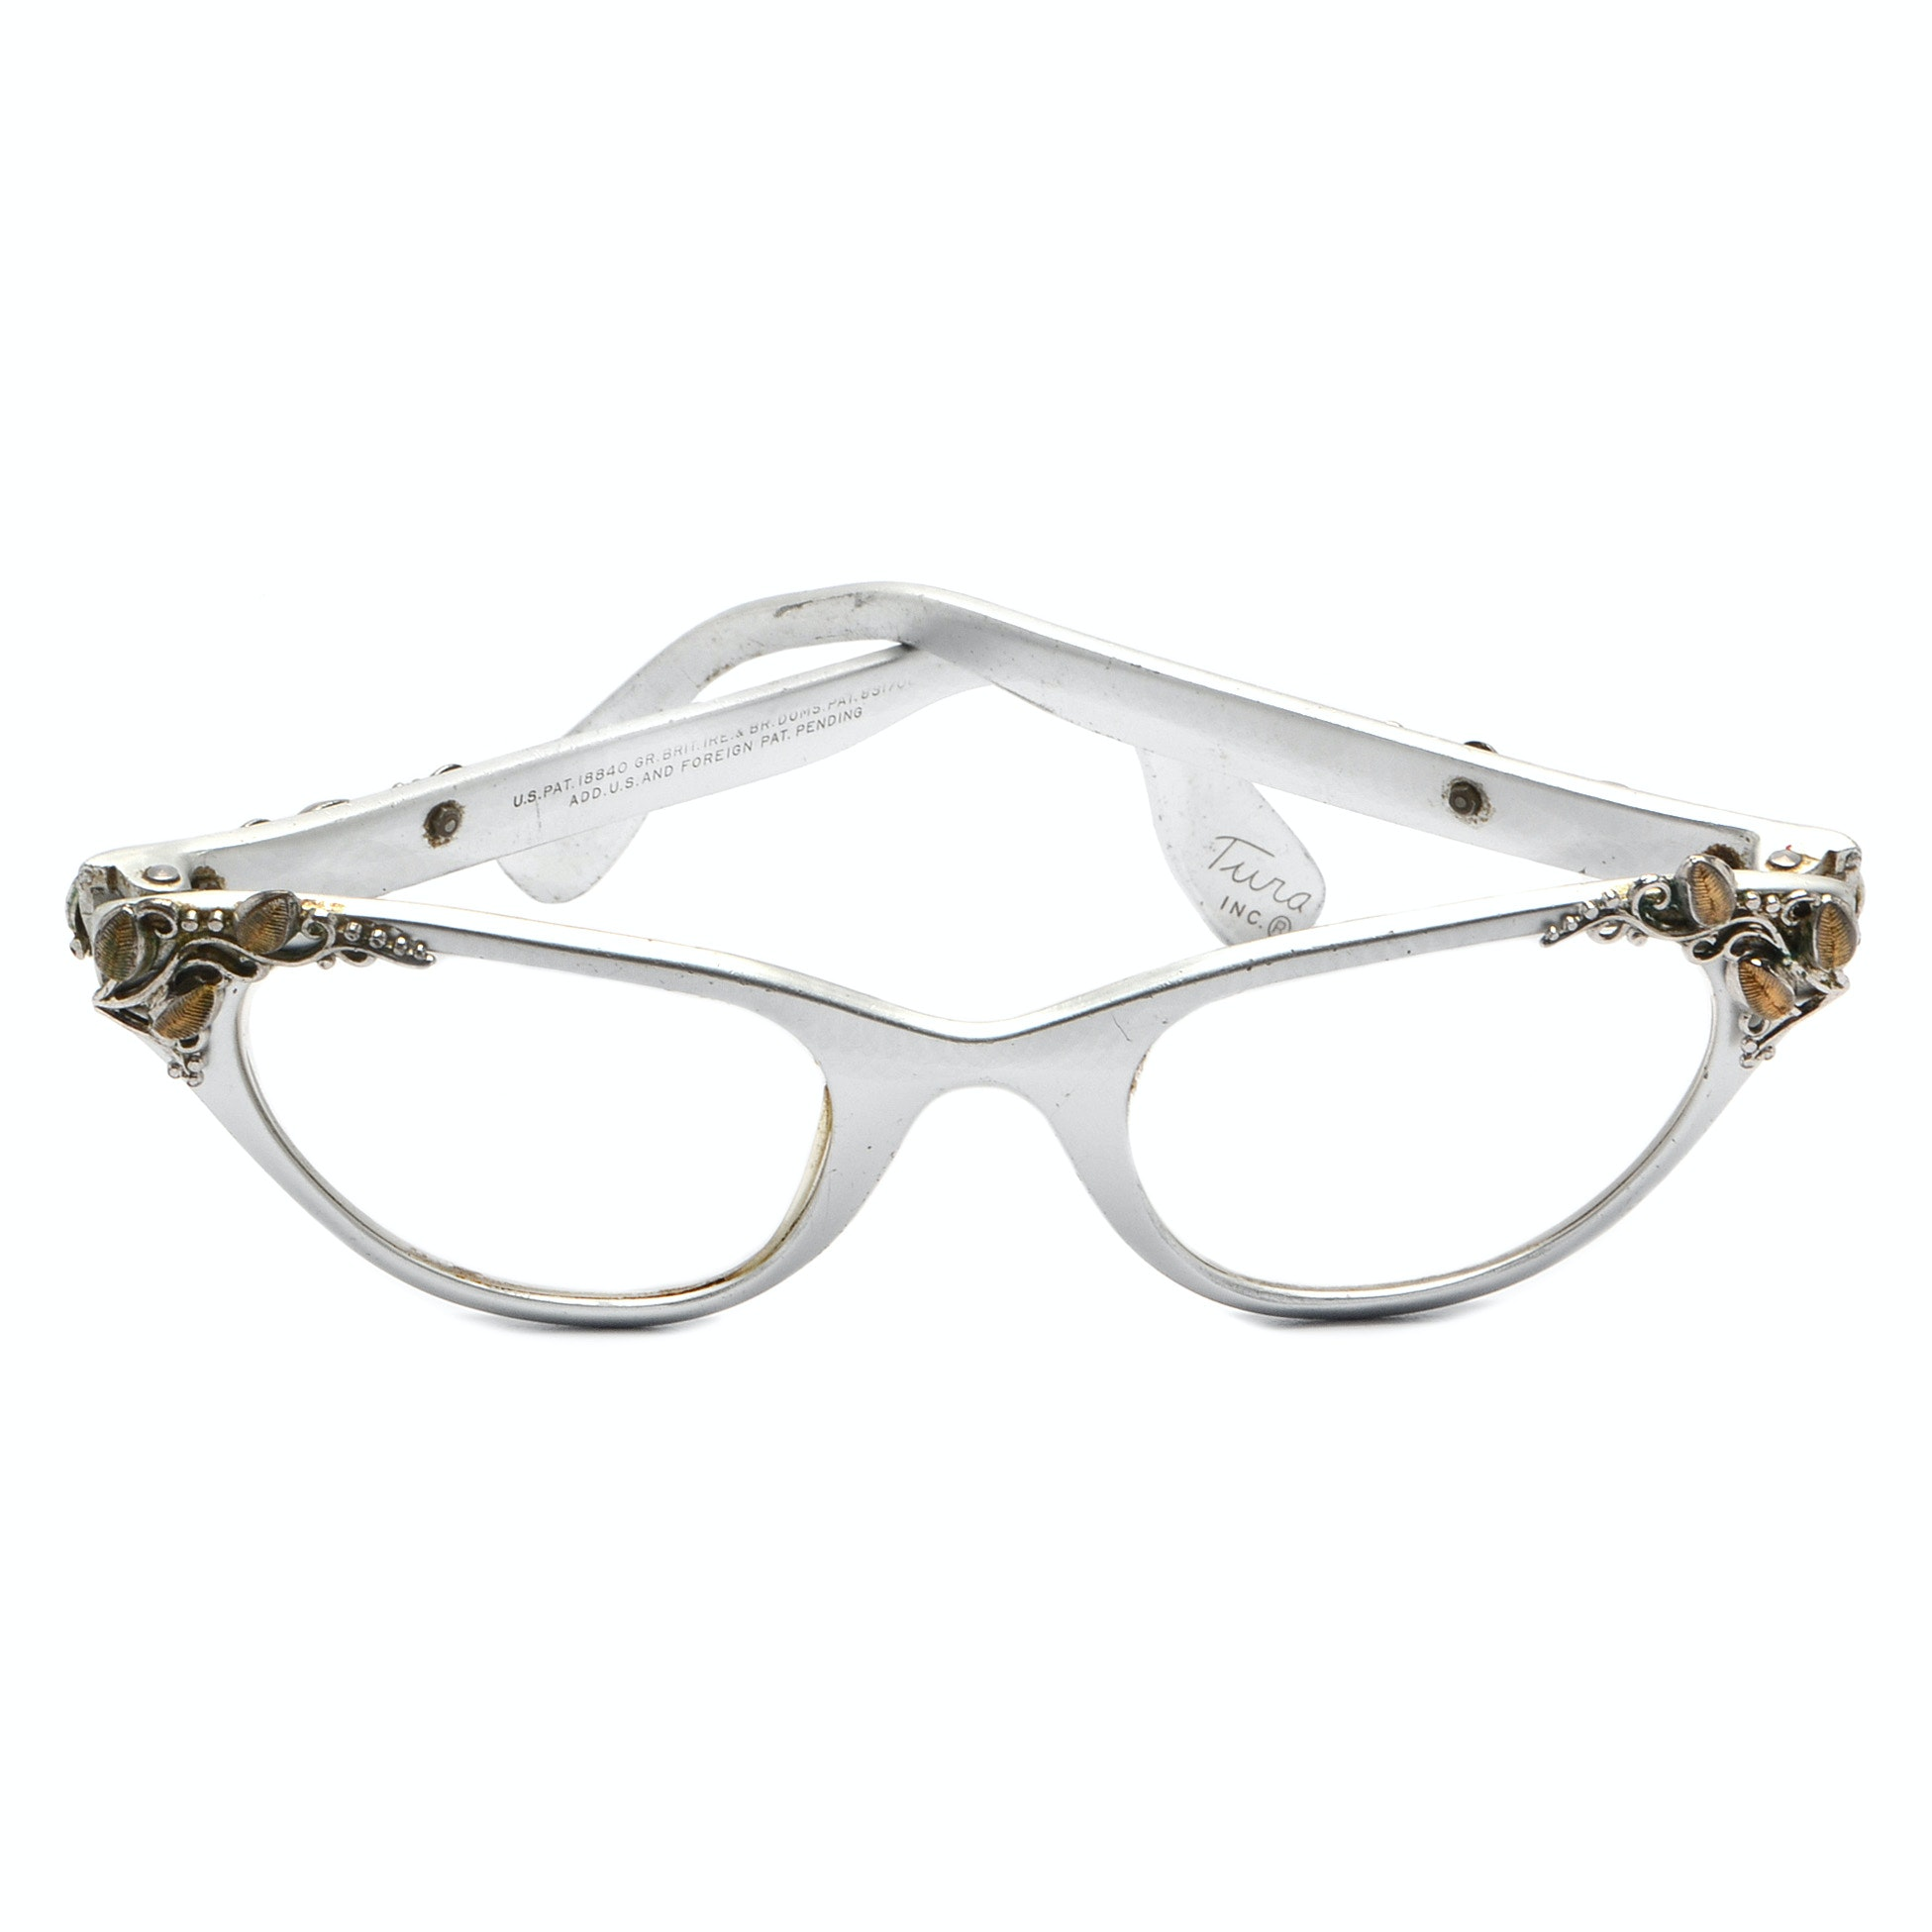 Vintage Tura Cat Eyeglasses